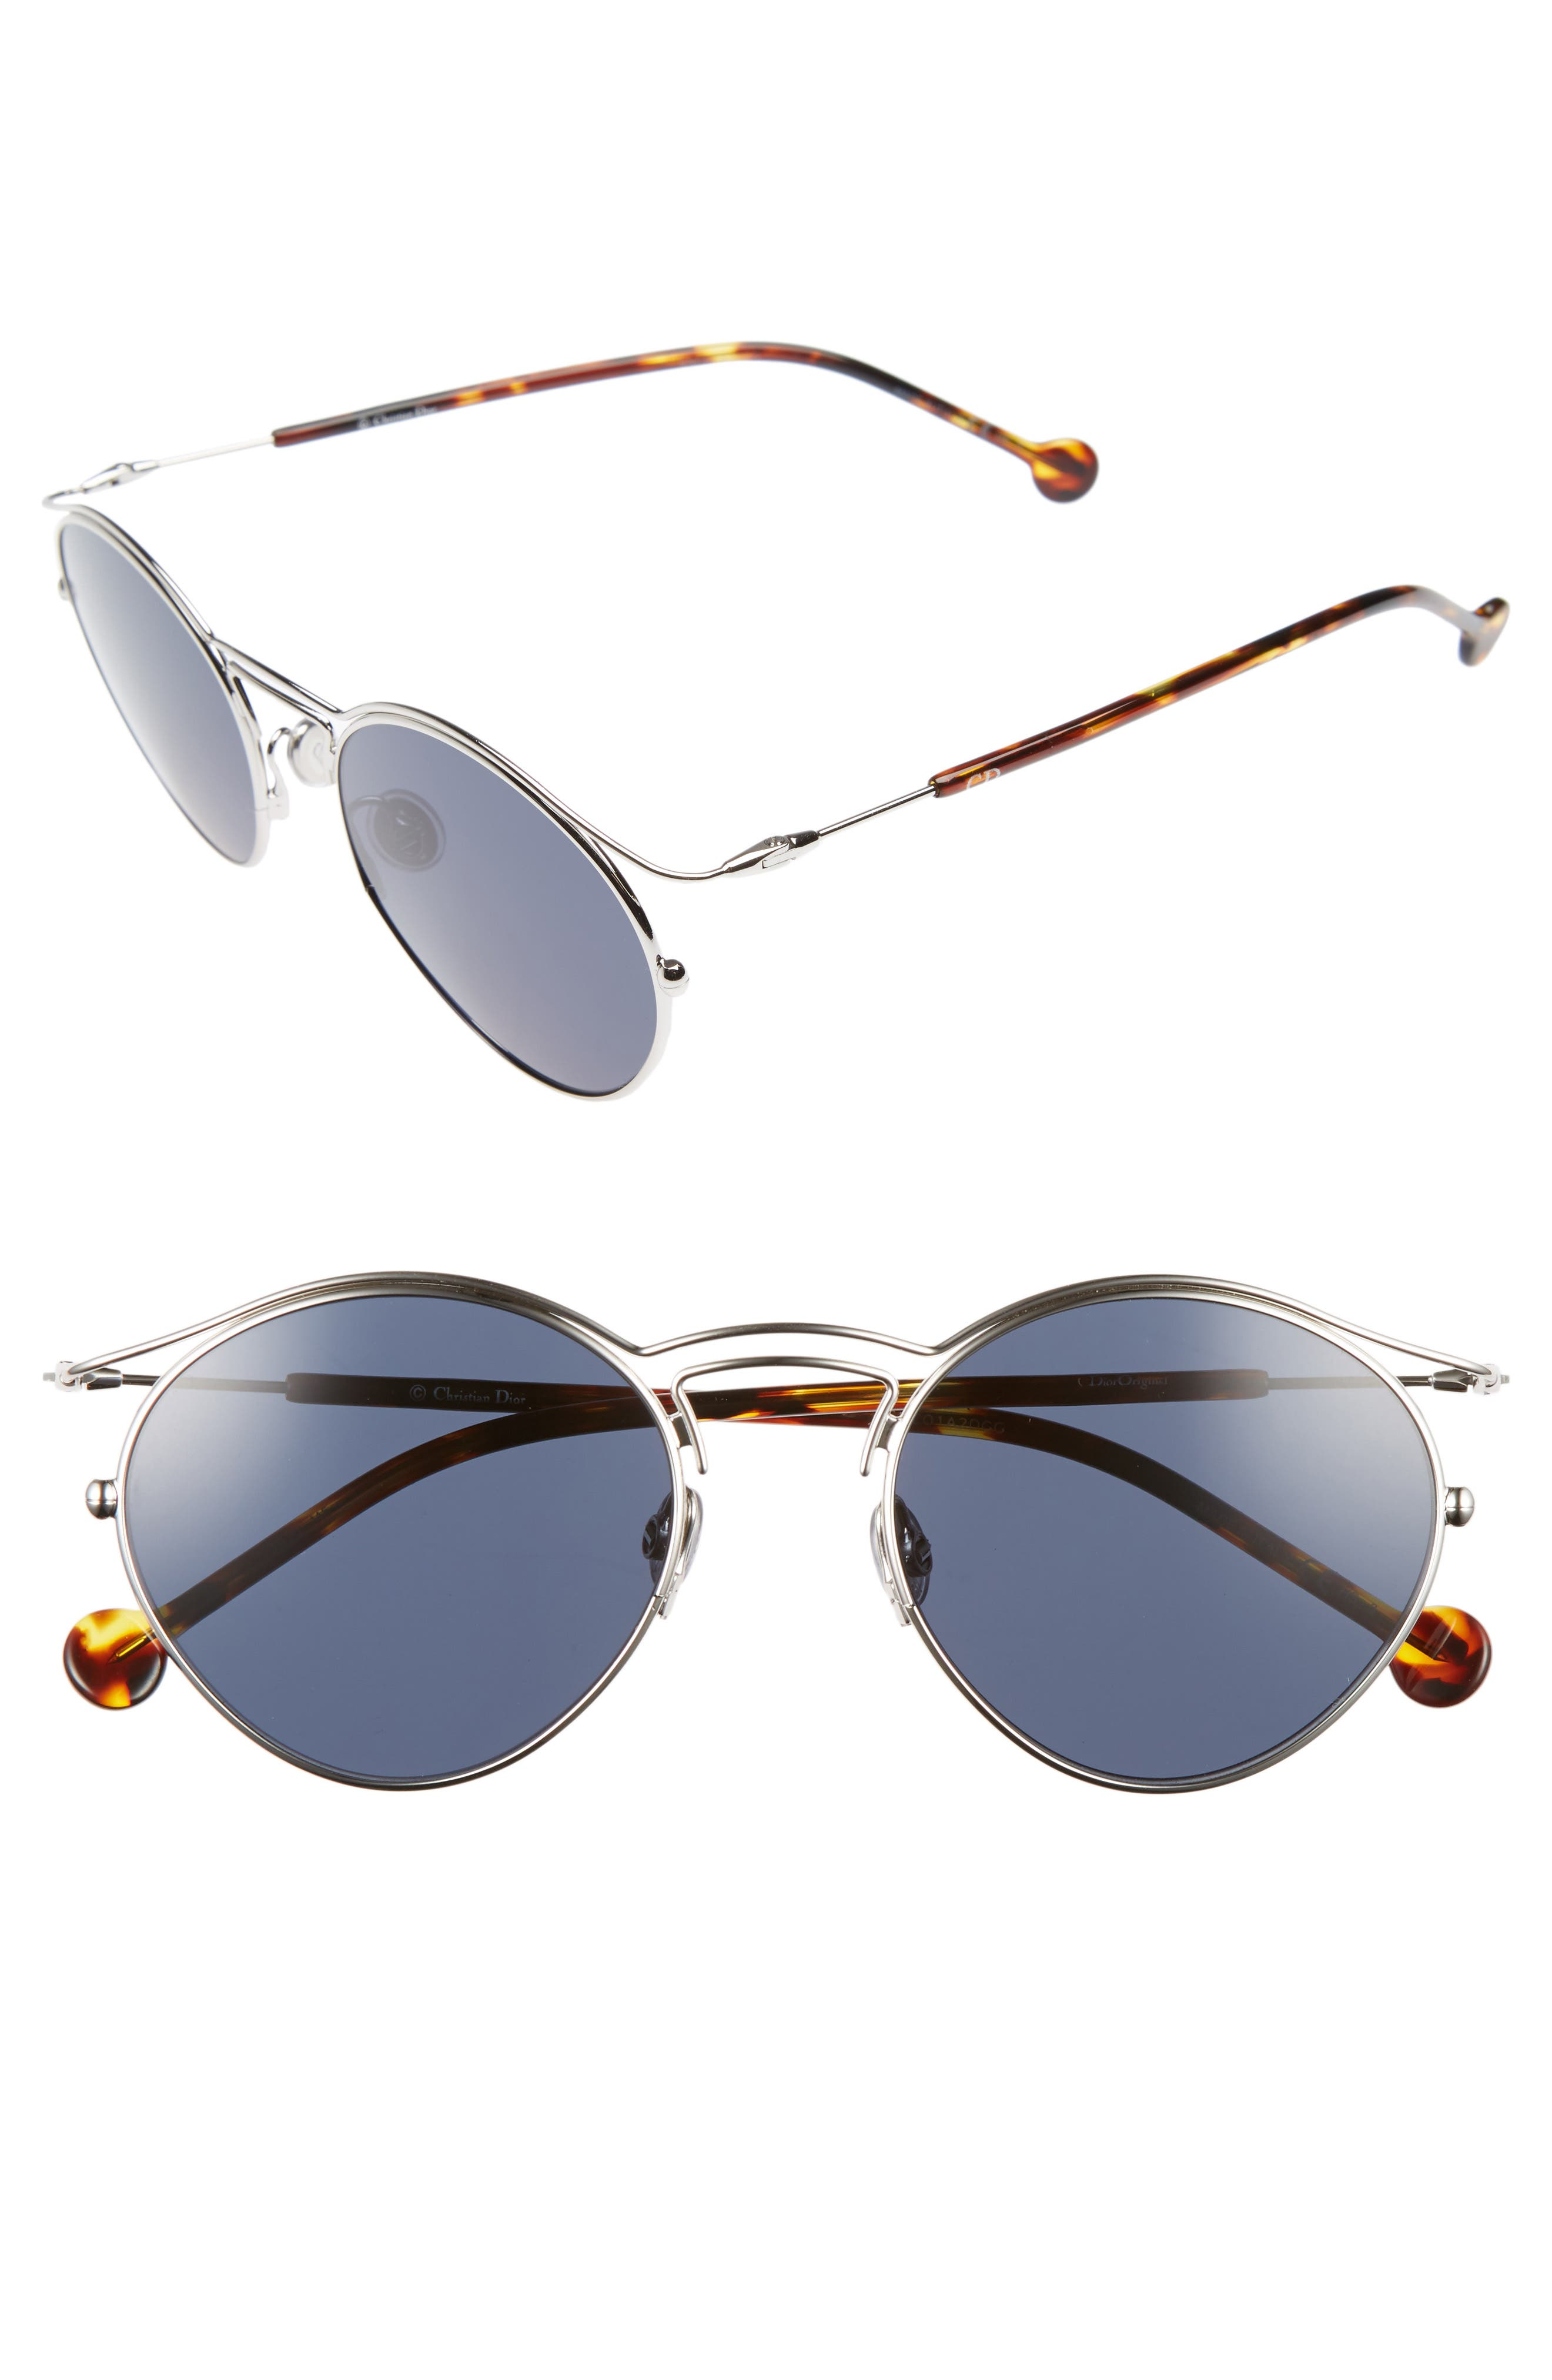 Dior Origin 53mm Sunglasses